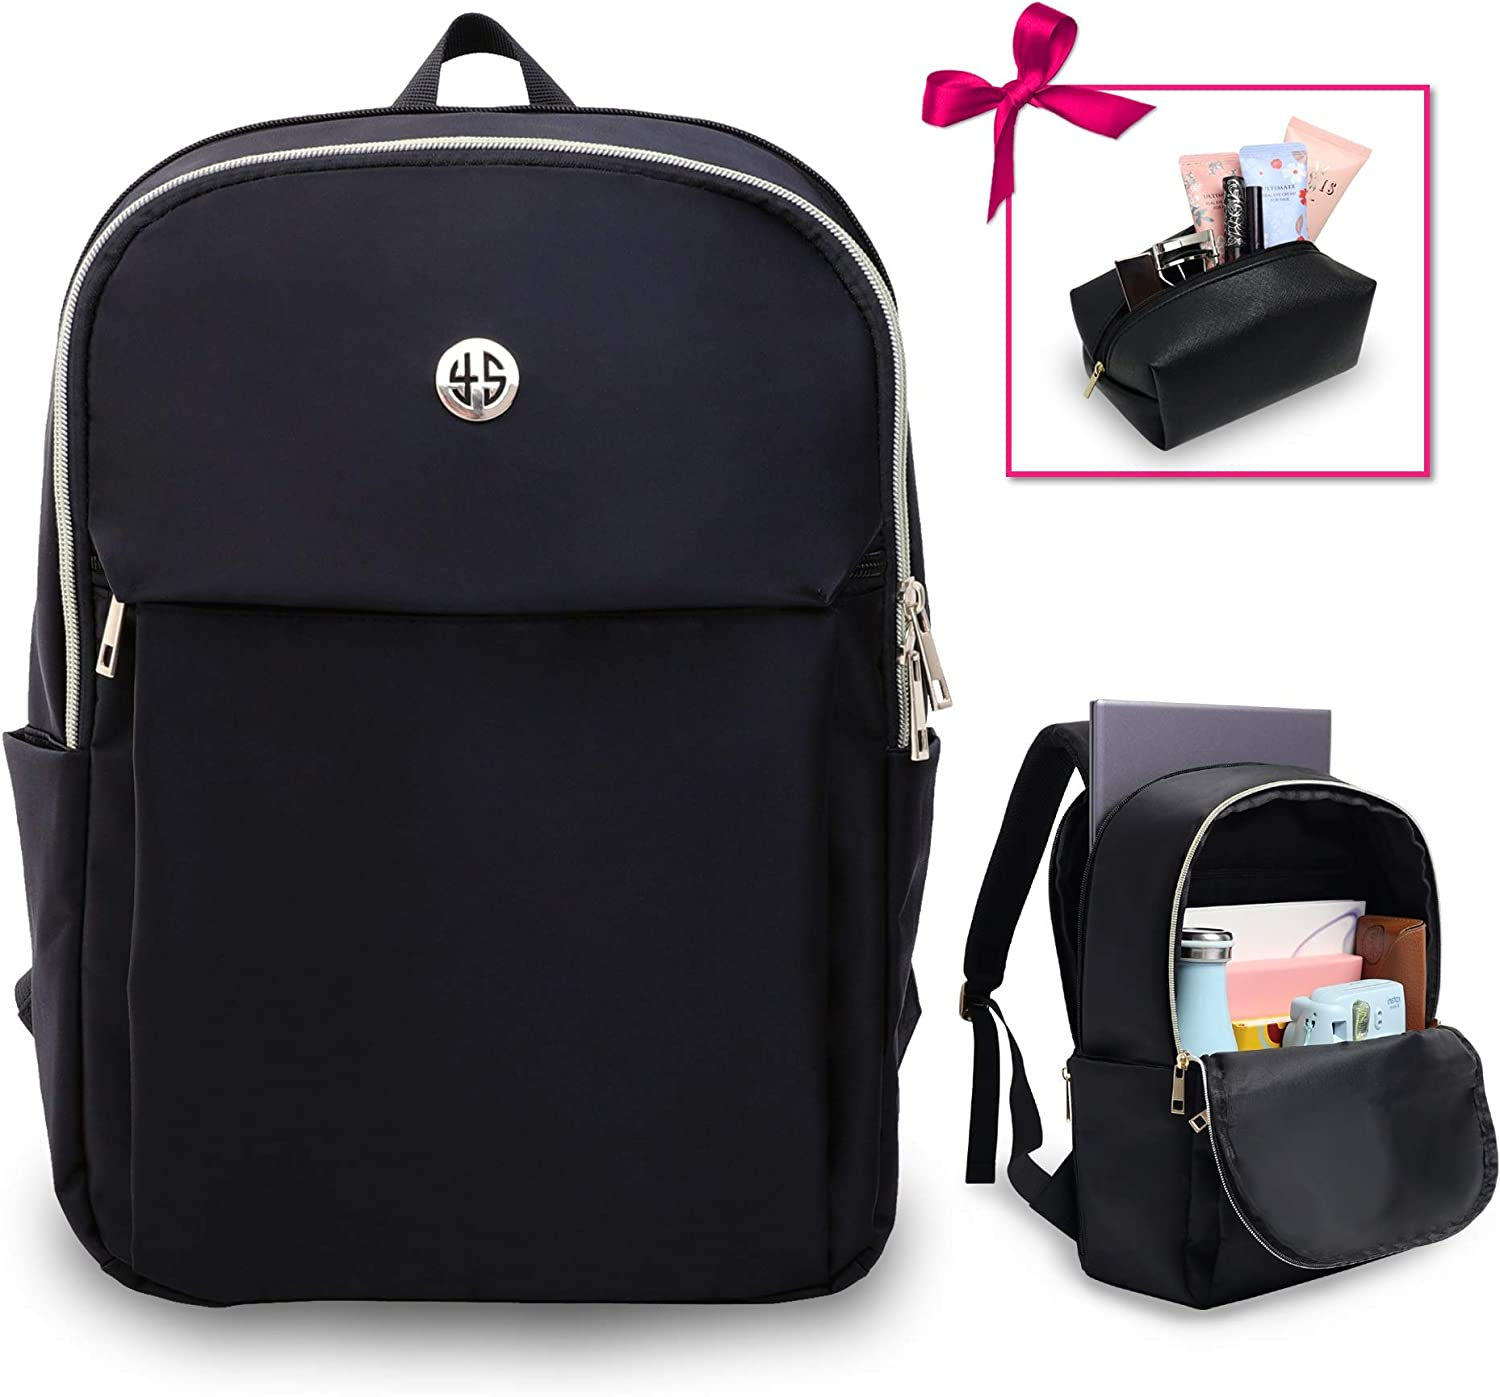 Water Repellent Durable Nylon Versatile Simple Design School For Work Ladies Lightweight Daypack Womens Casual Slim Laptop Backpack Holds 14 Laptop Includes Makeup Bag Zippered /& Secure Pockets